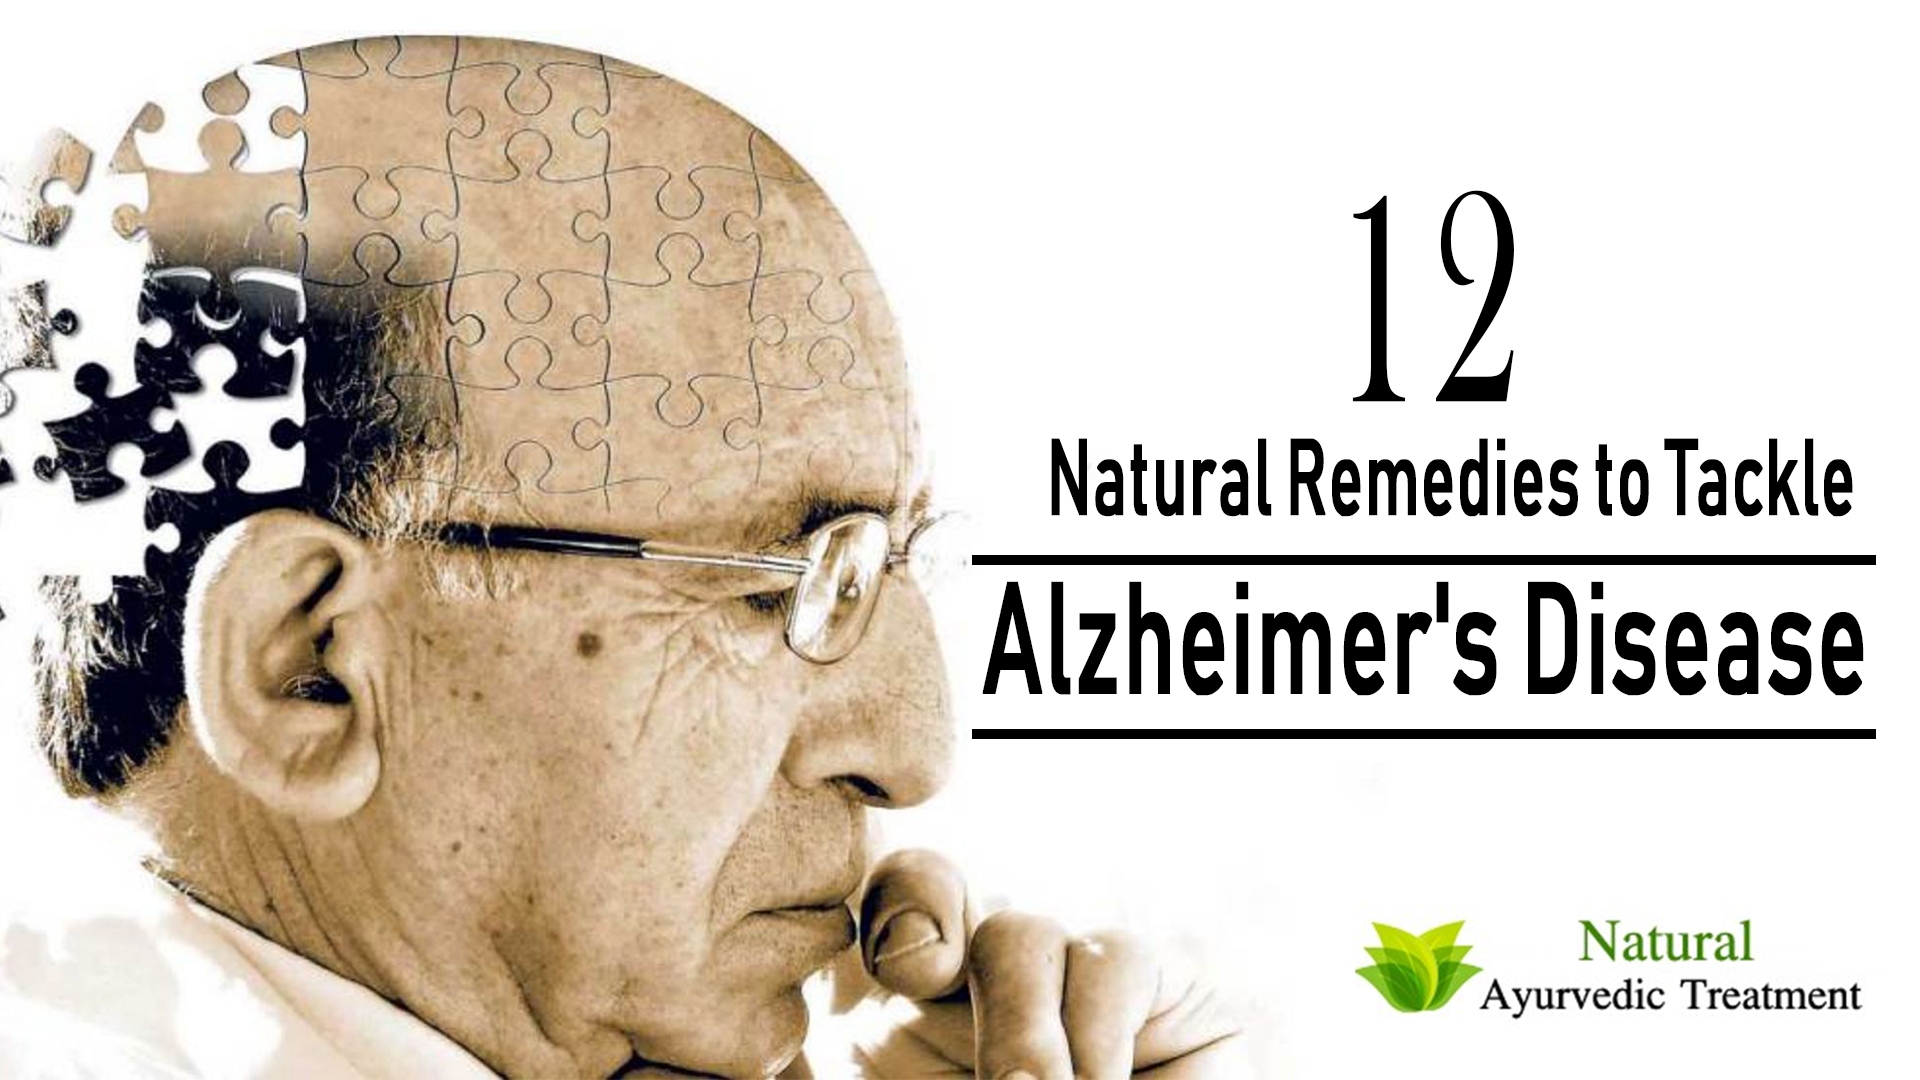 12 Natural Remedies to Tackle Alzheimer's Disease